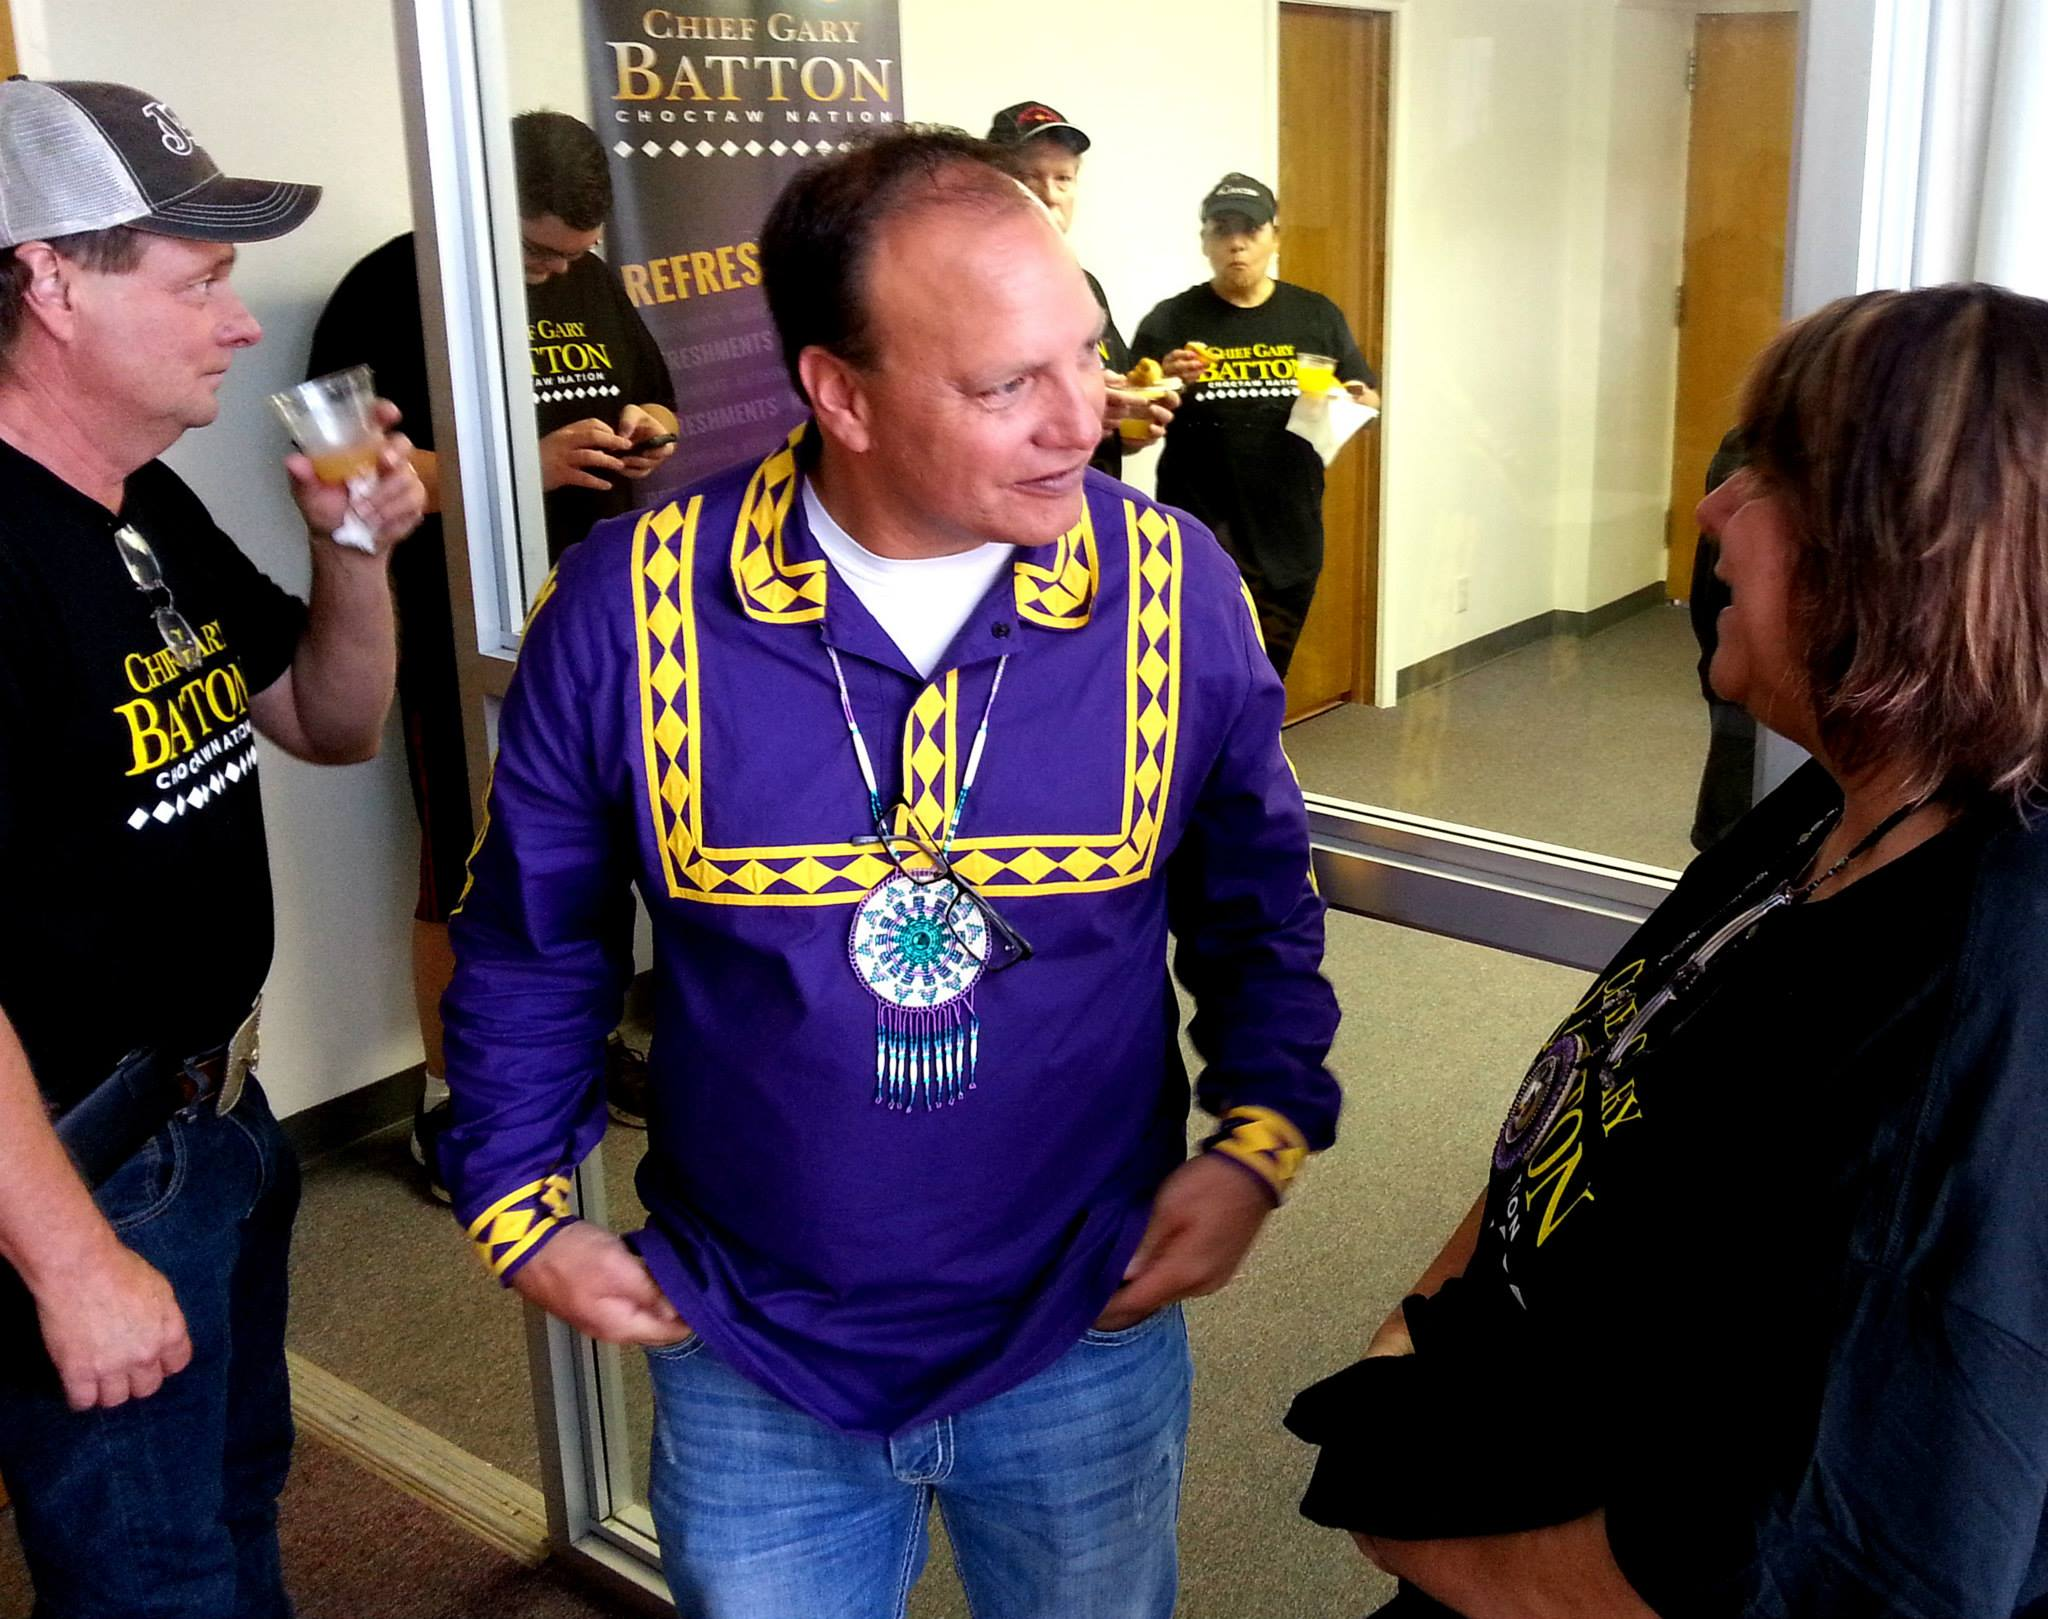 Interview: Chief Gary Batton of Choctaw Nation shares philosophy